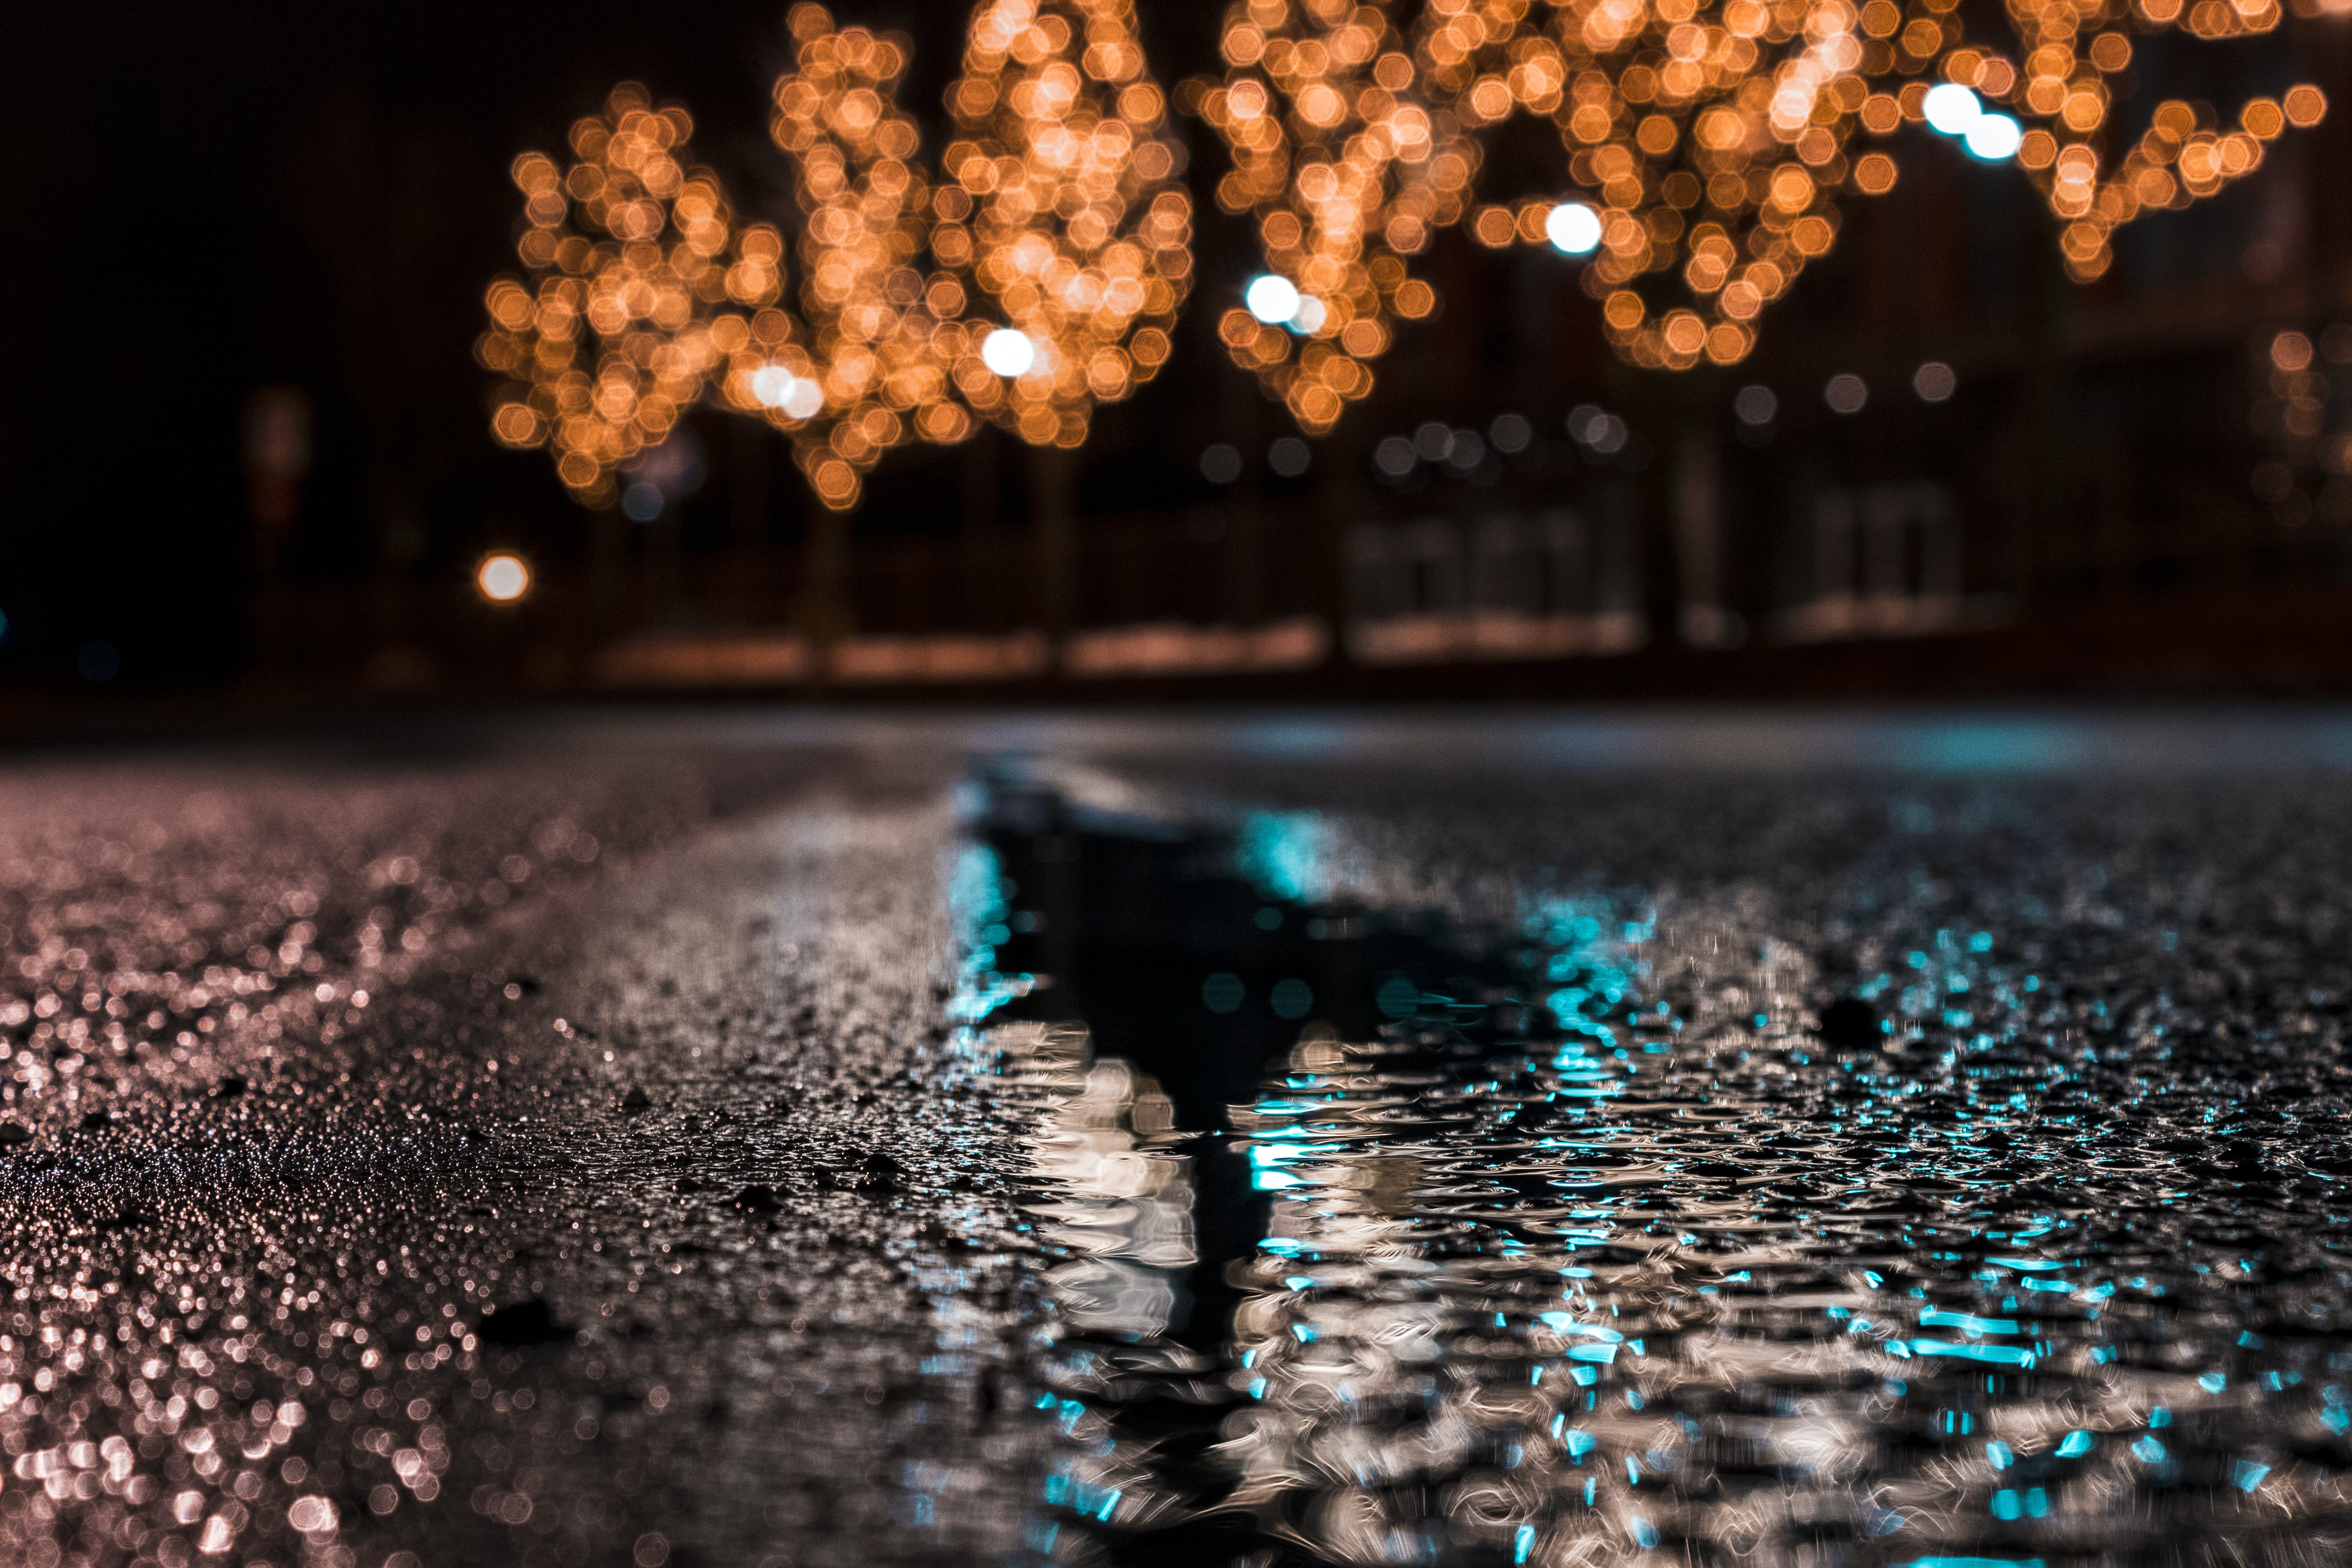 Selective Focus Photography of Asphalt Road With Water Droplets Near City Lights during Nighttime